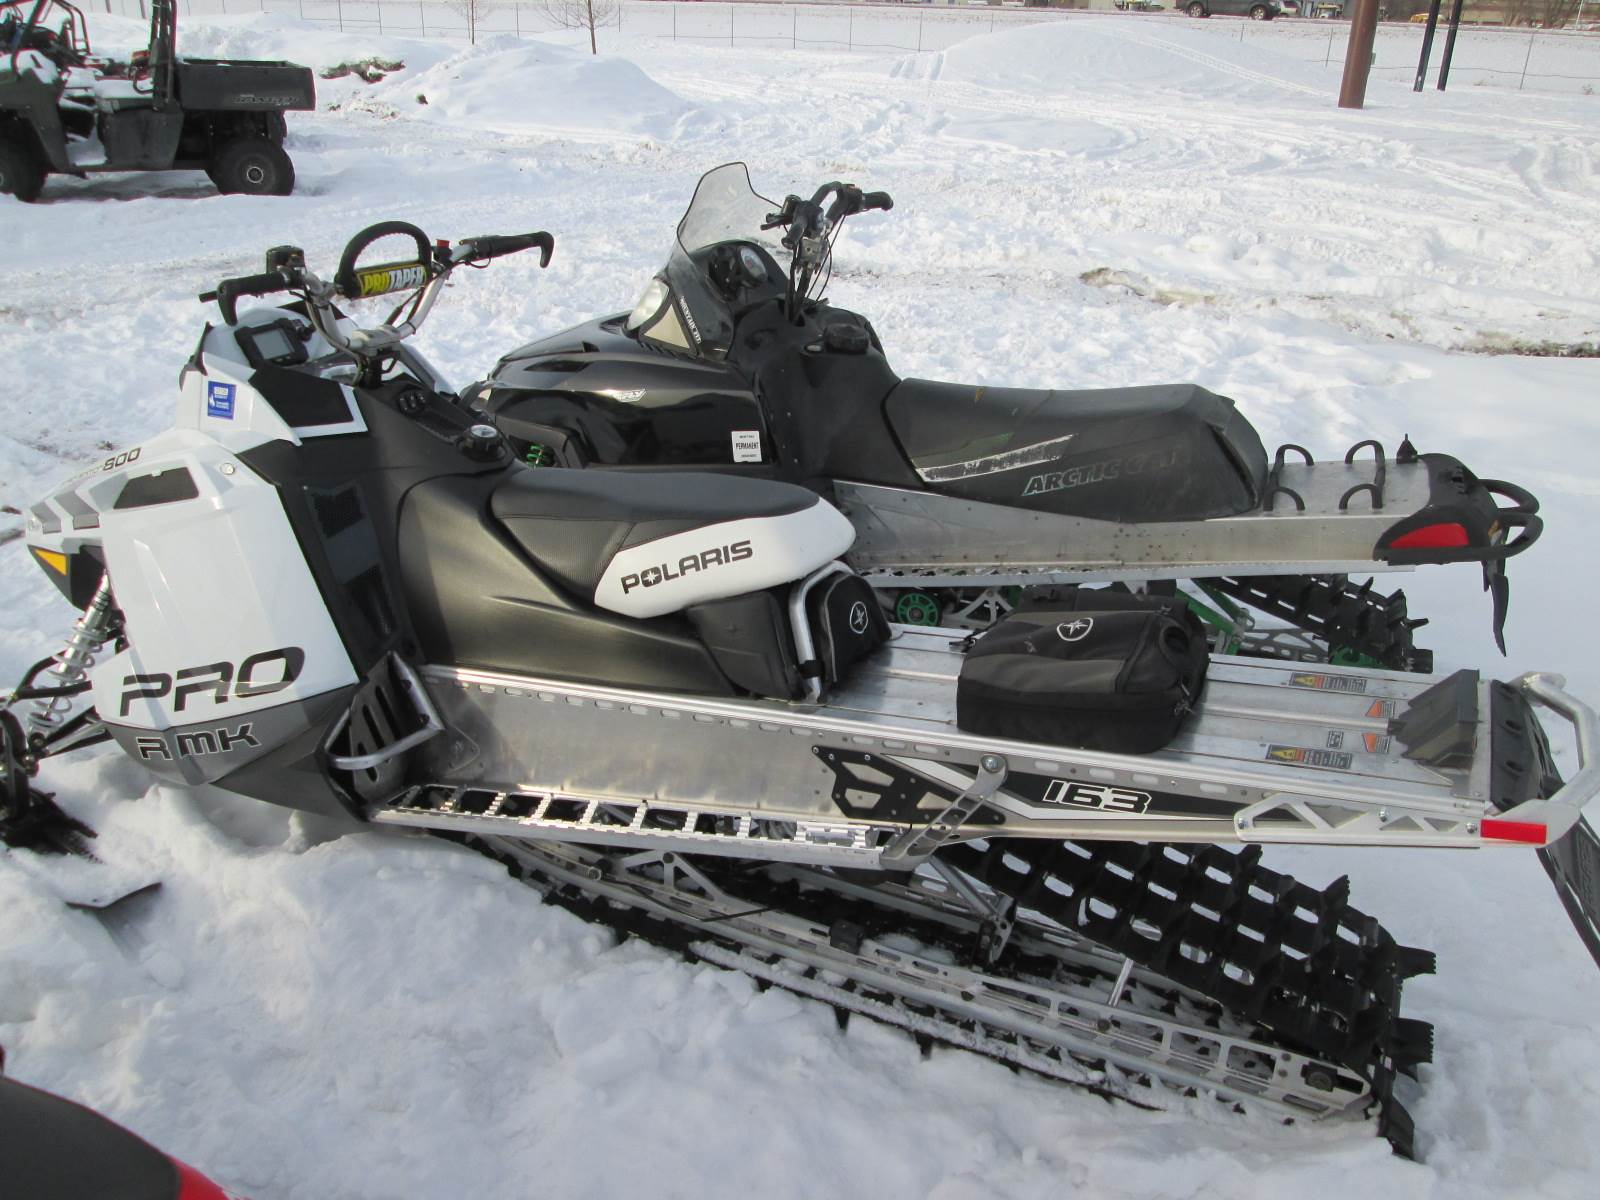 2013 Polaris 800 Pro RMK 163 in Billings, Montana